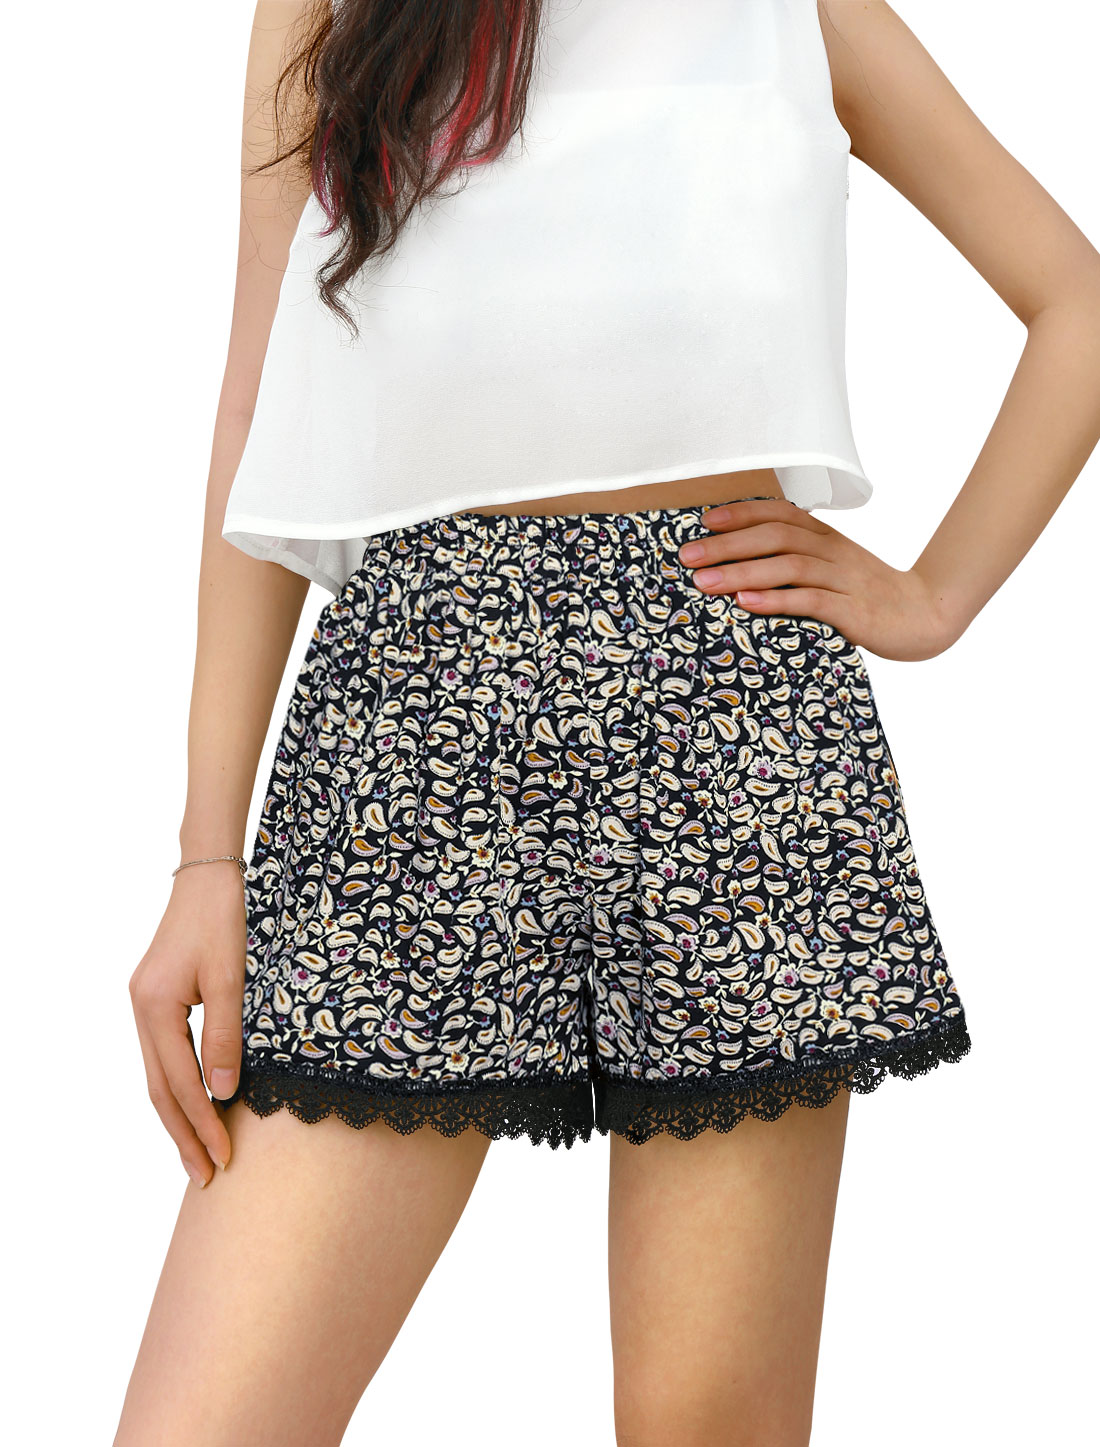 Lady Paisleys Floral Print Lace Trim Shorts Black Beige M